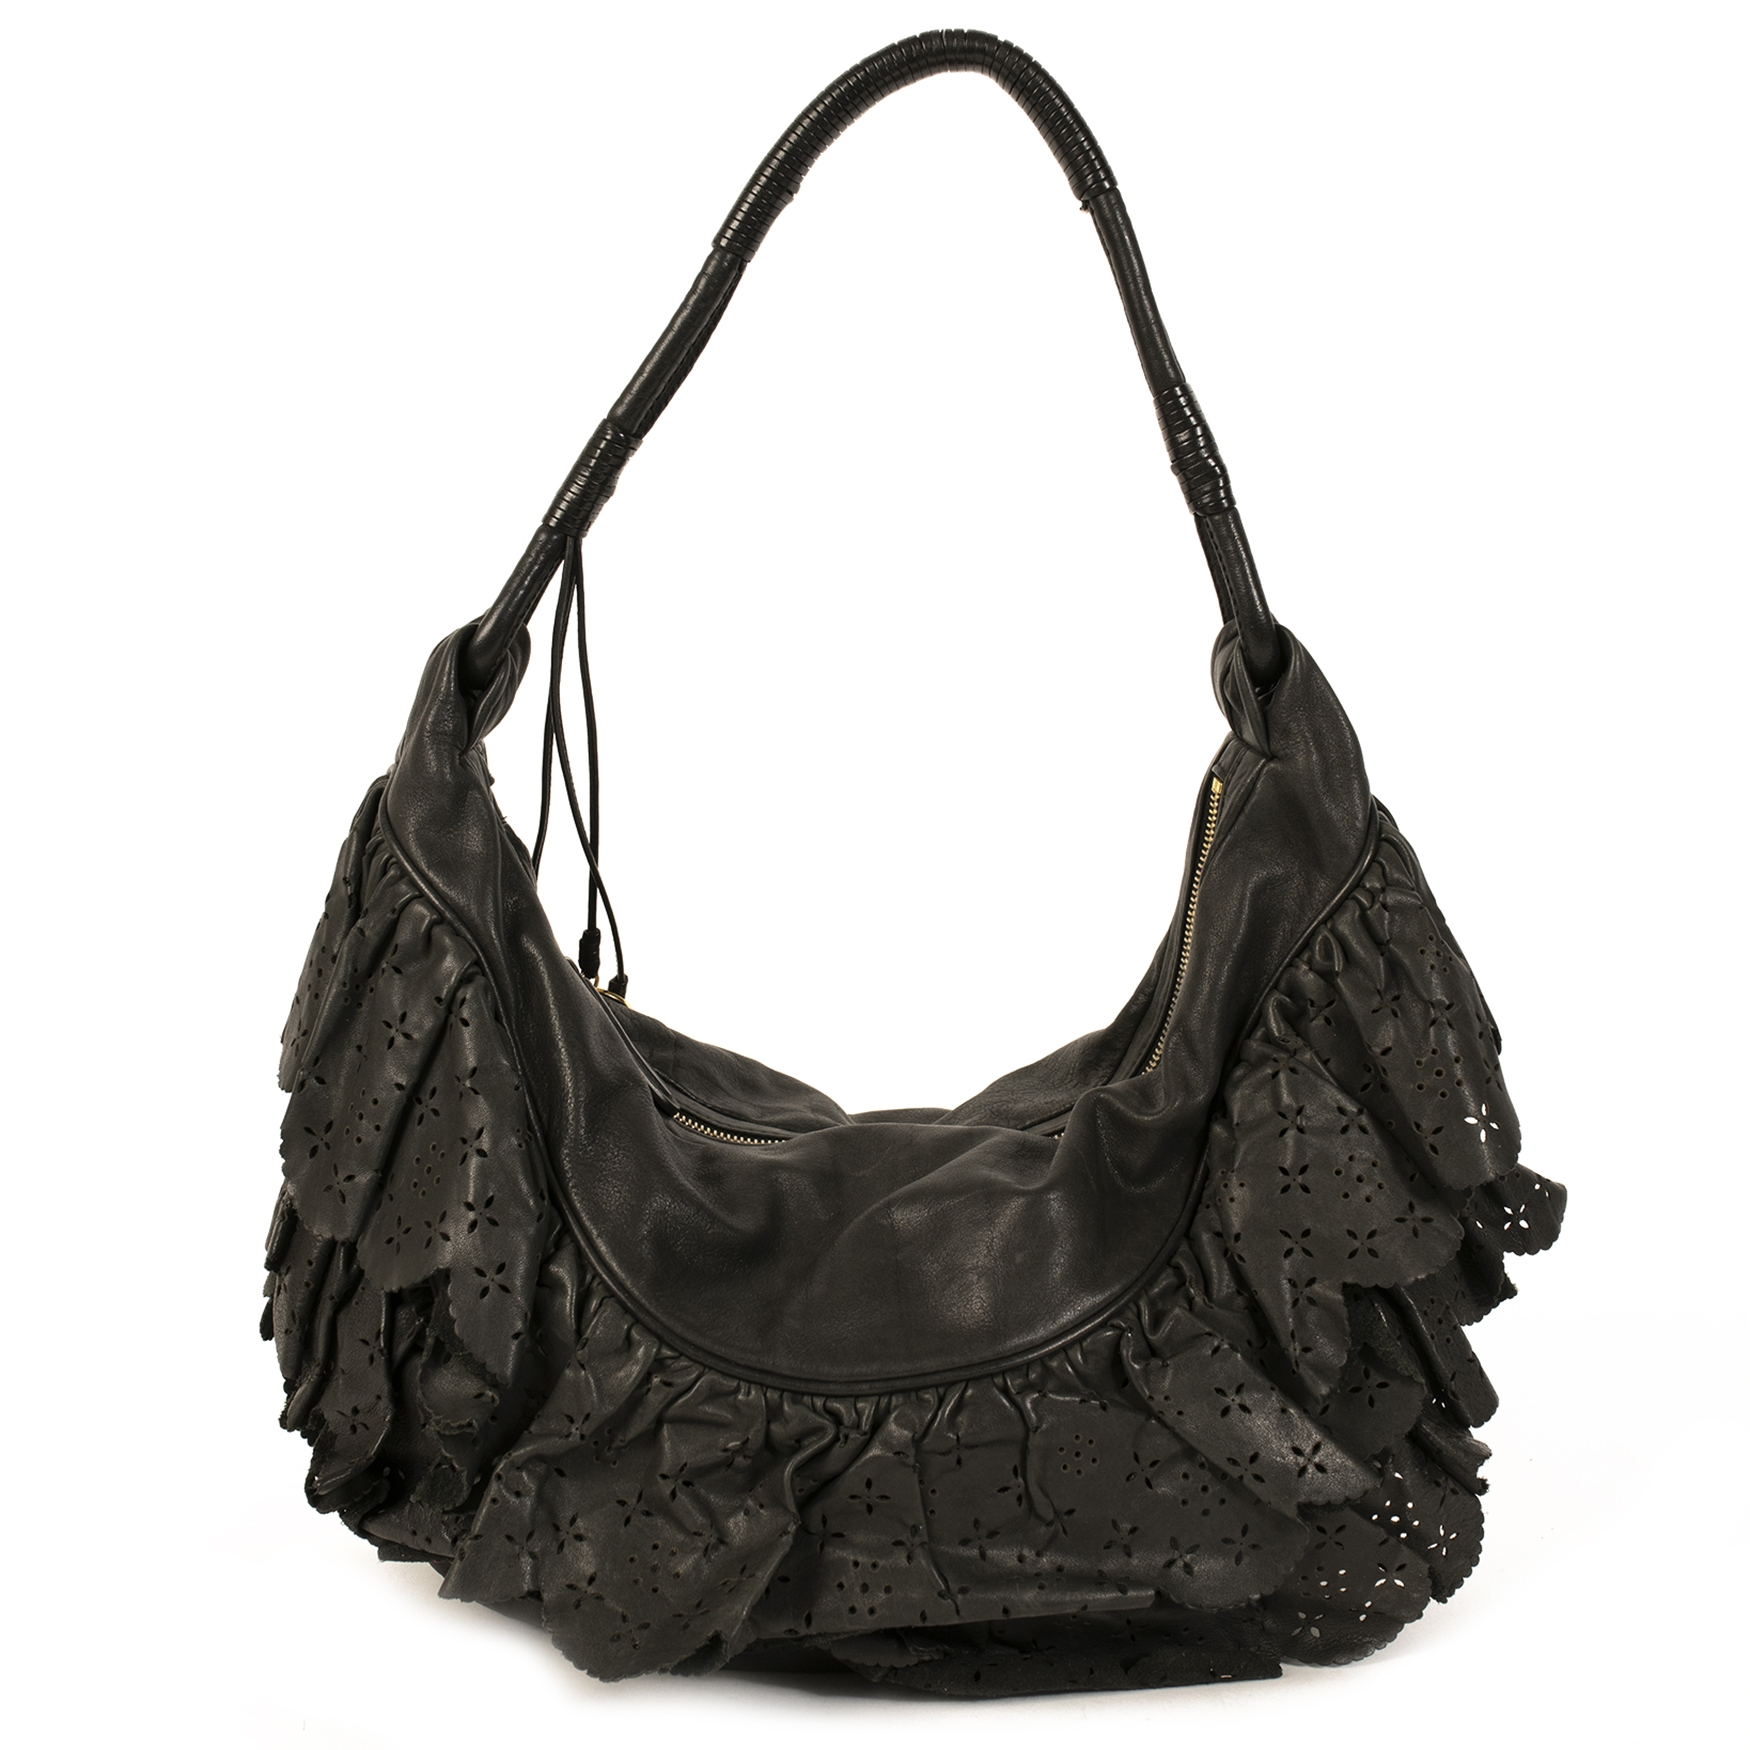 Dior Black Gypsy Ruffle Shoulder Bag